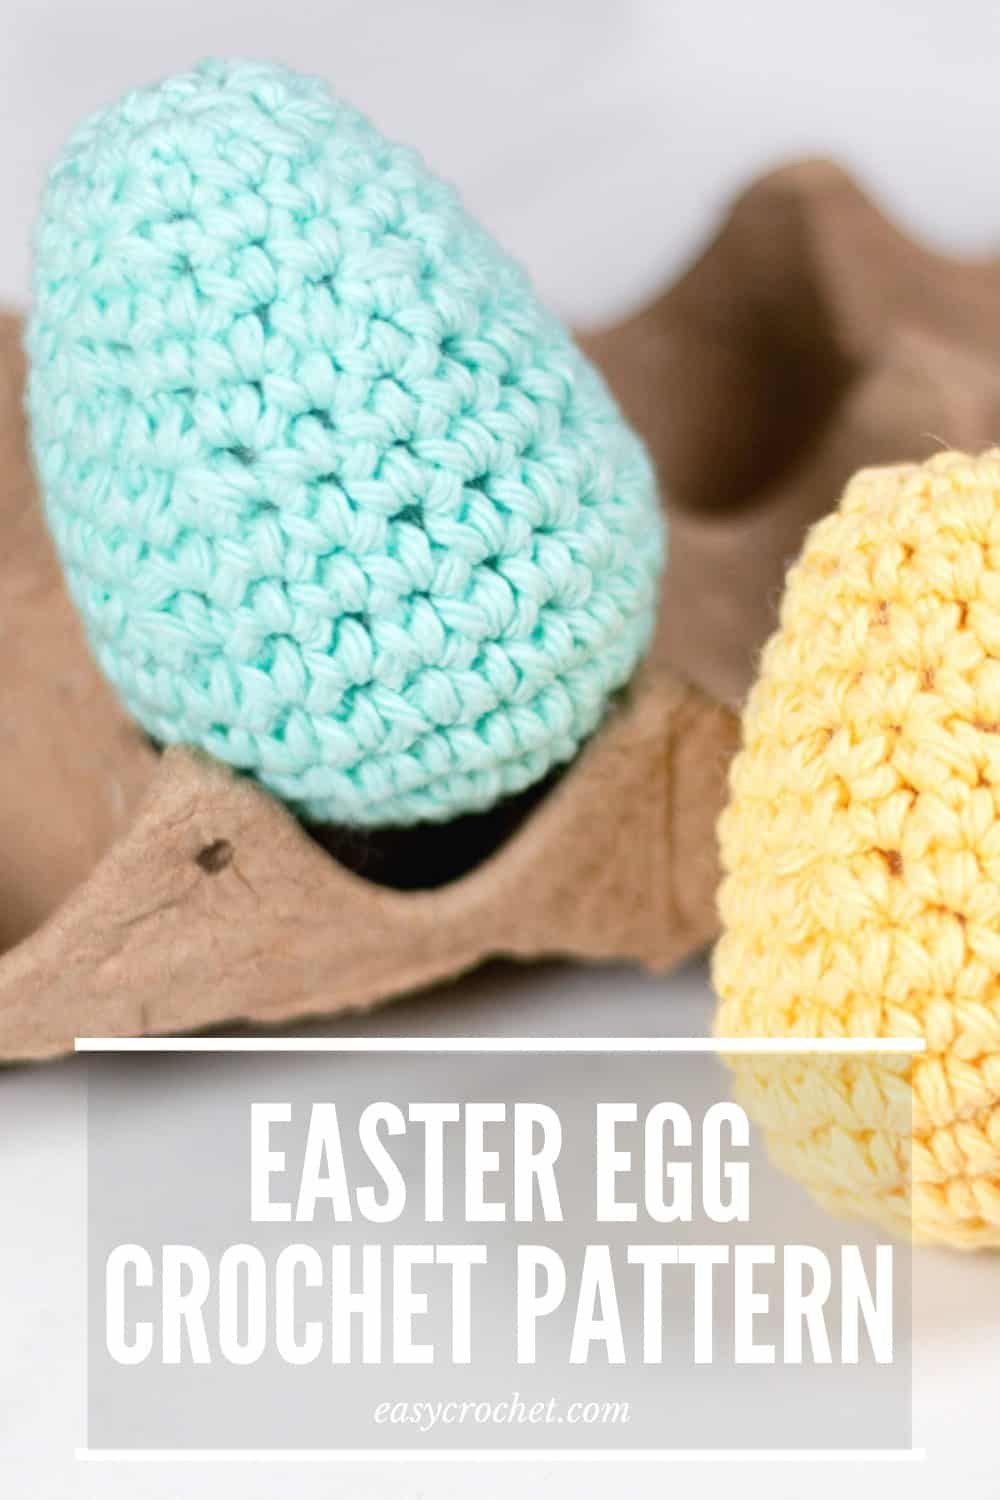 Free Easter Egg Crochet Pattern by Easy Crochet. Make this fun Easter crochet pattern and reuse them year and year again! via @easycrochetcom